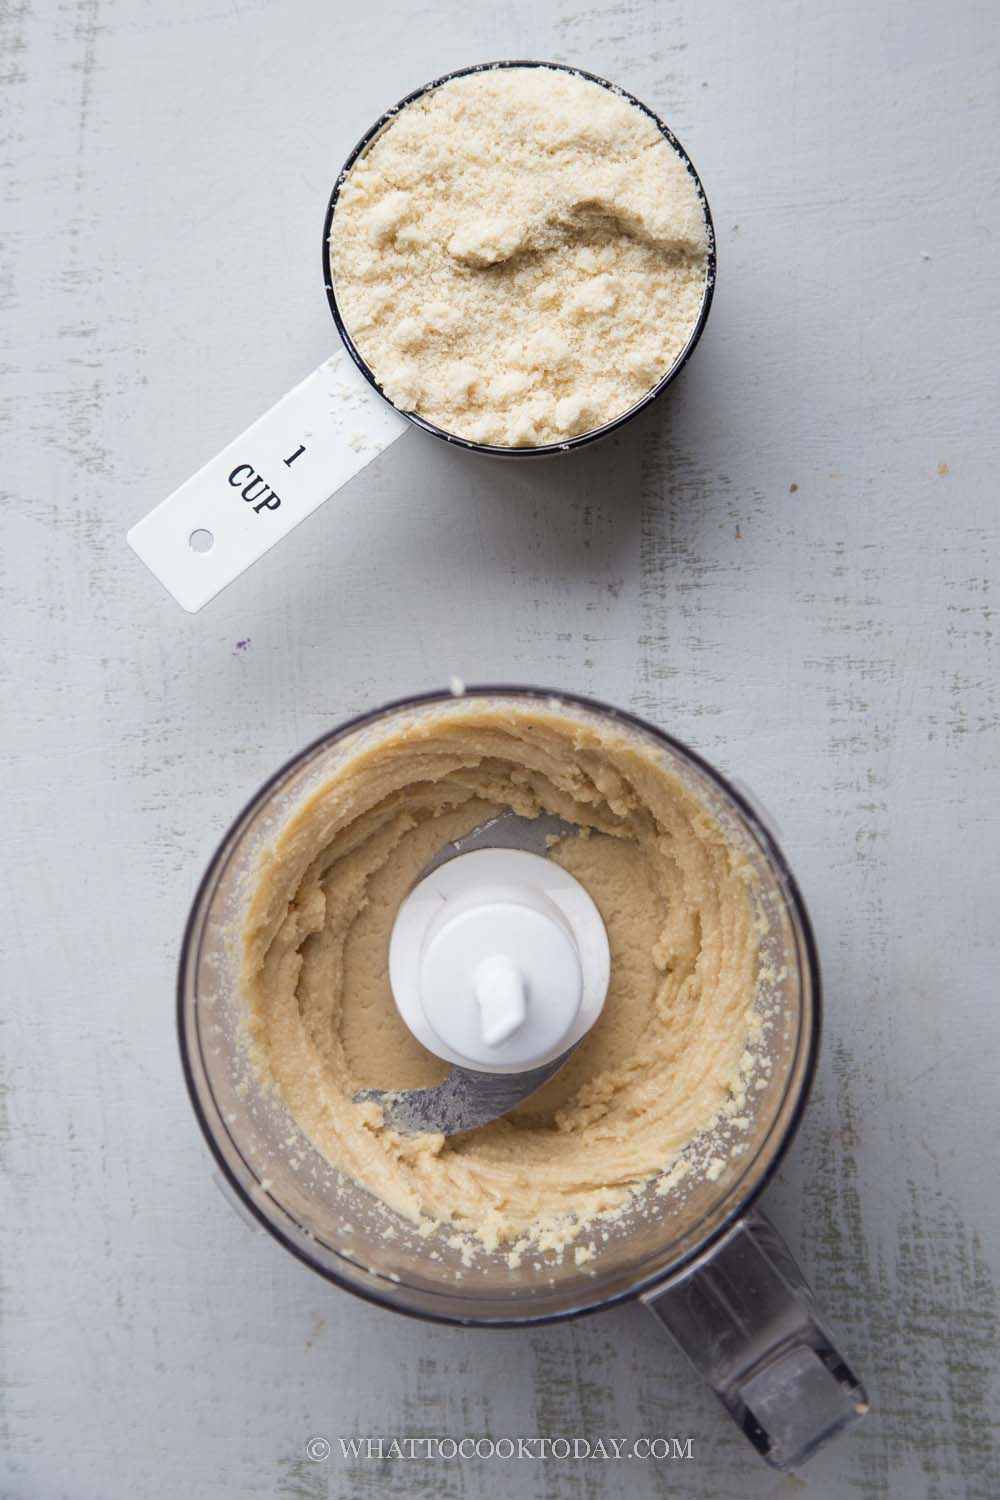 Easy Homemade Almond Butter with Almond Flour or Almond Meal (No Added Oil)